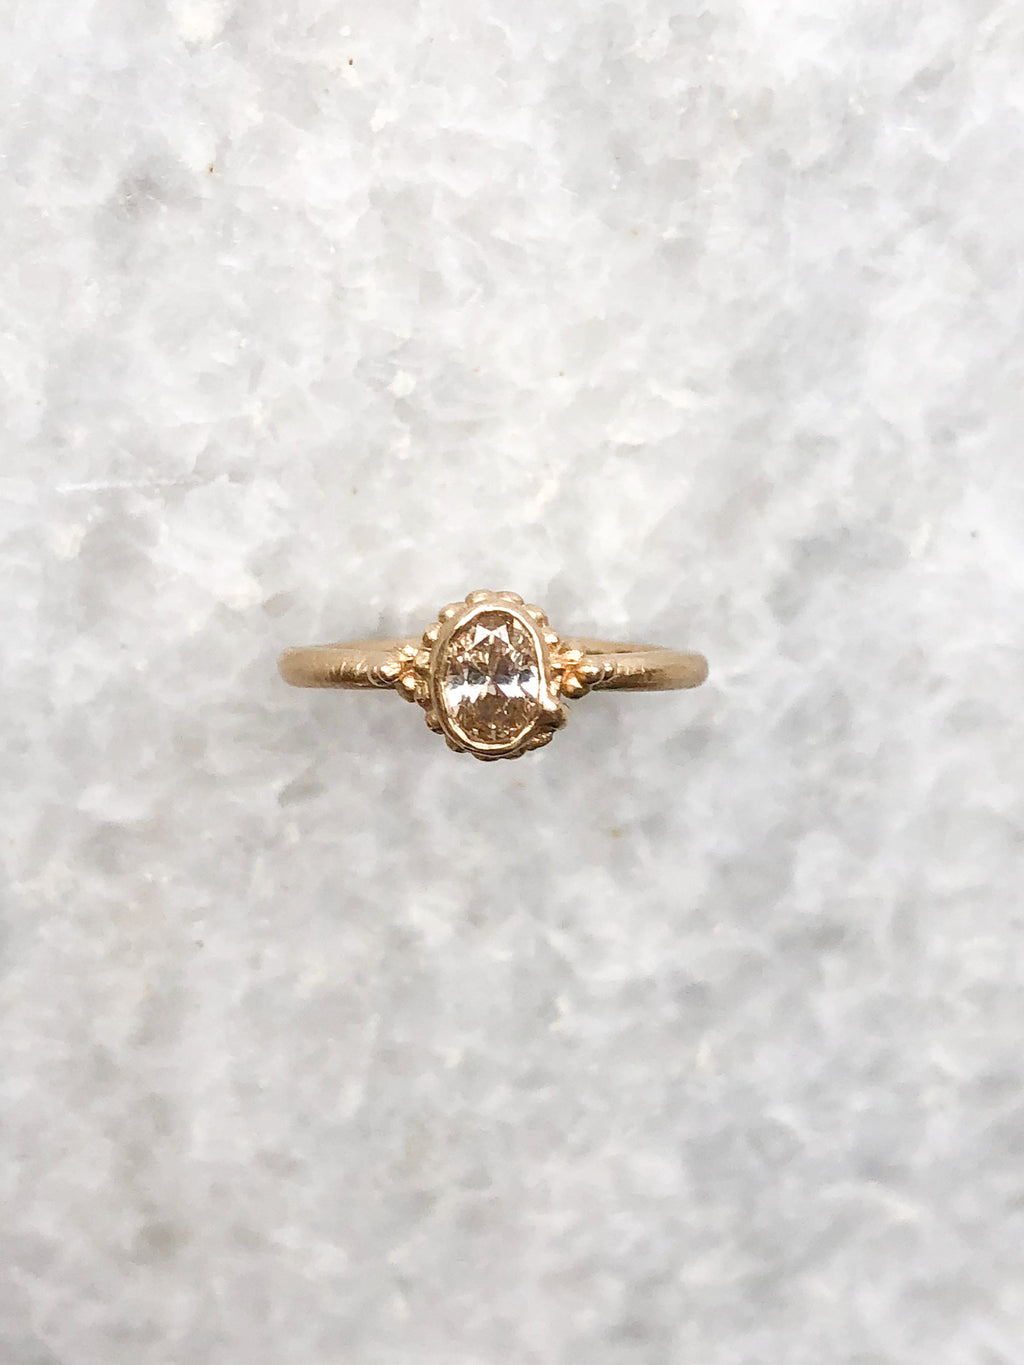 Champagne Diamond Ring in Beaded Setting